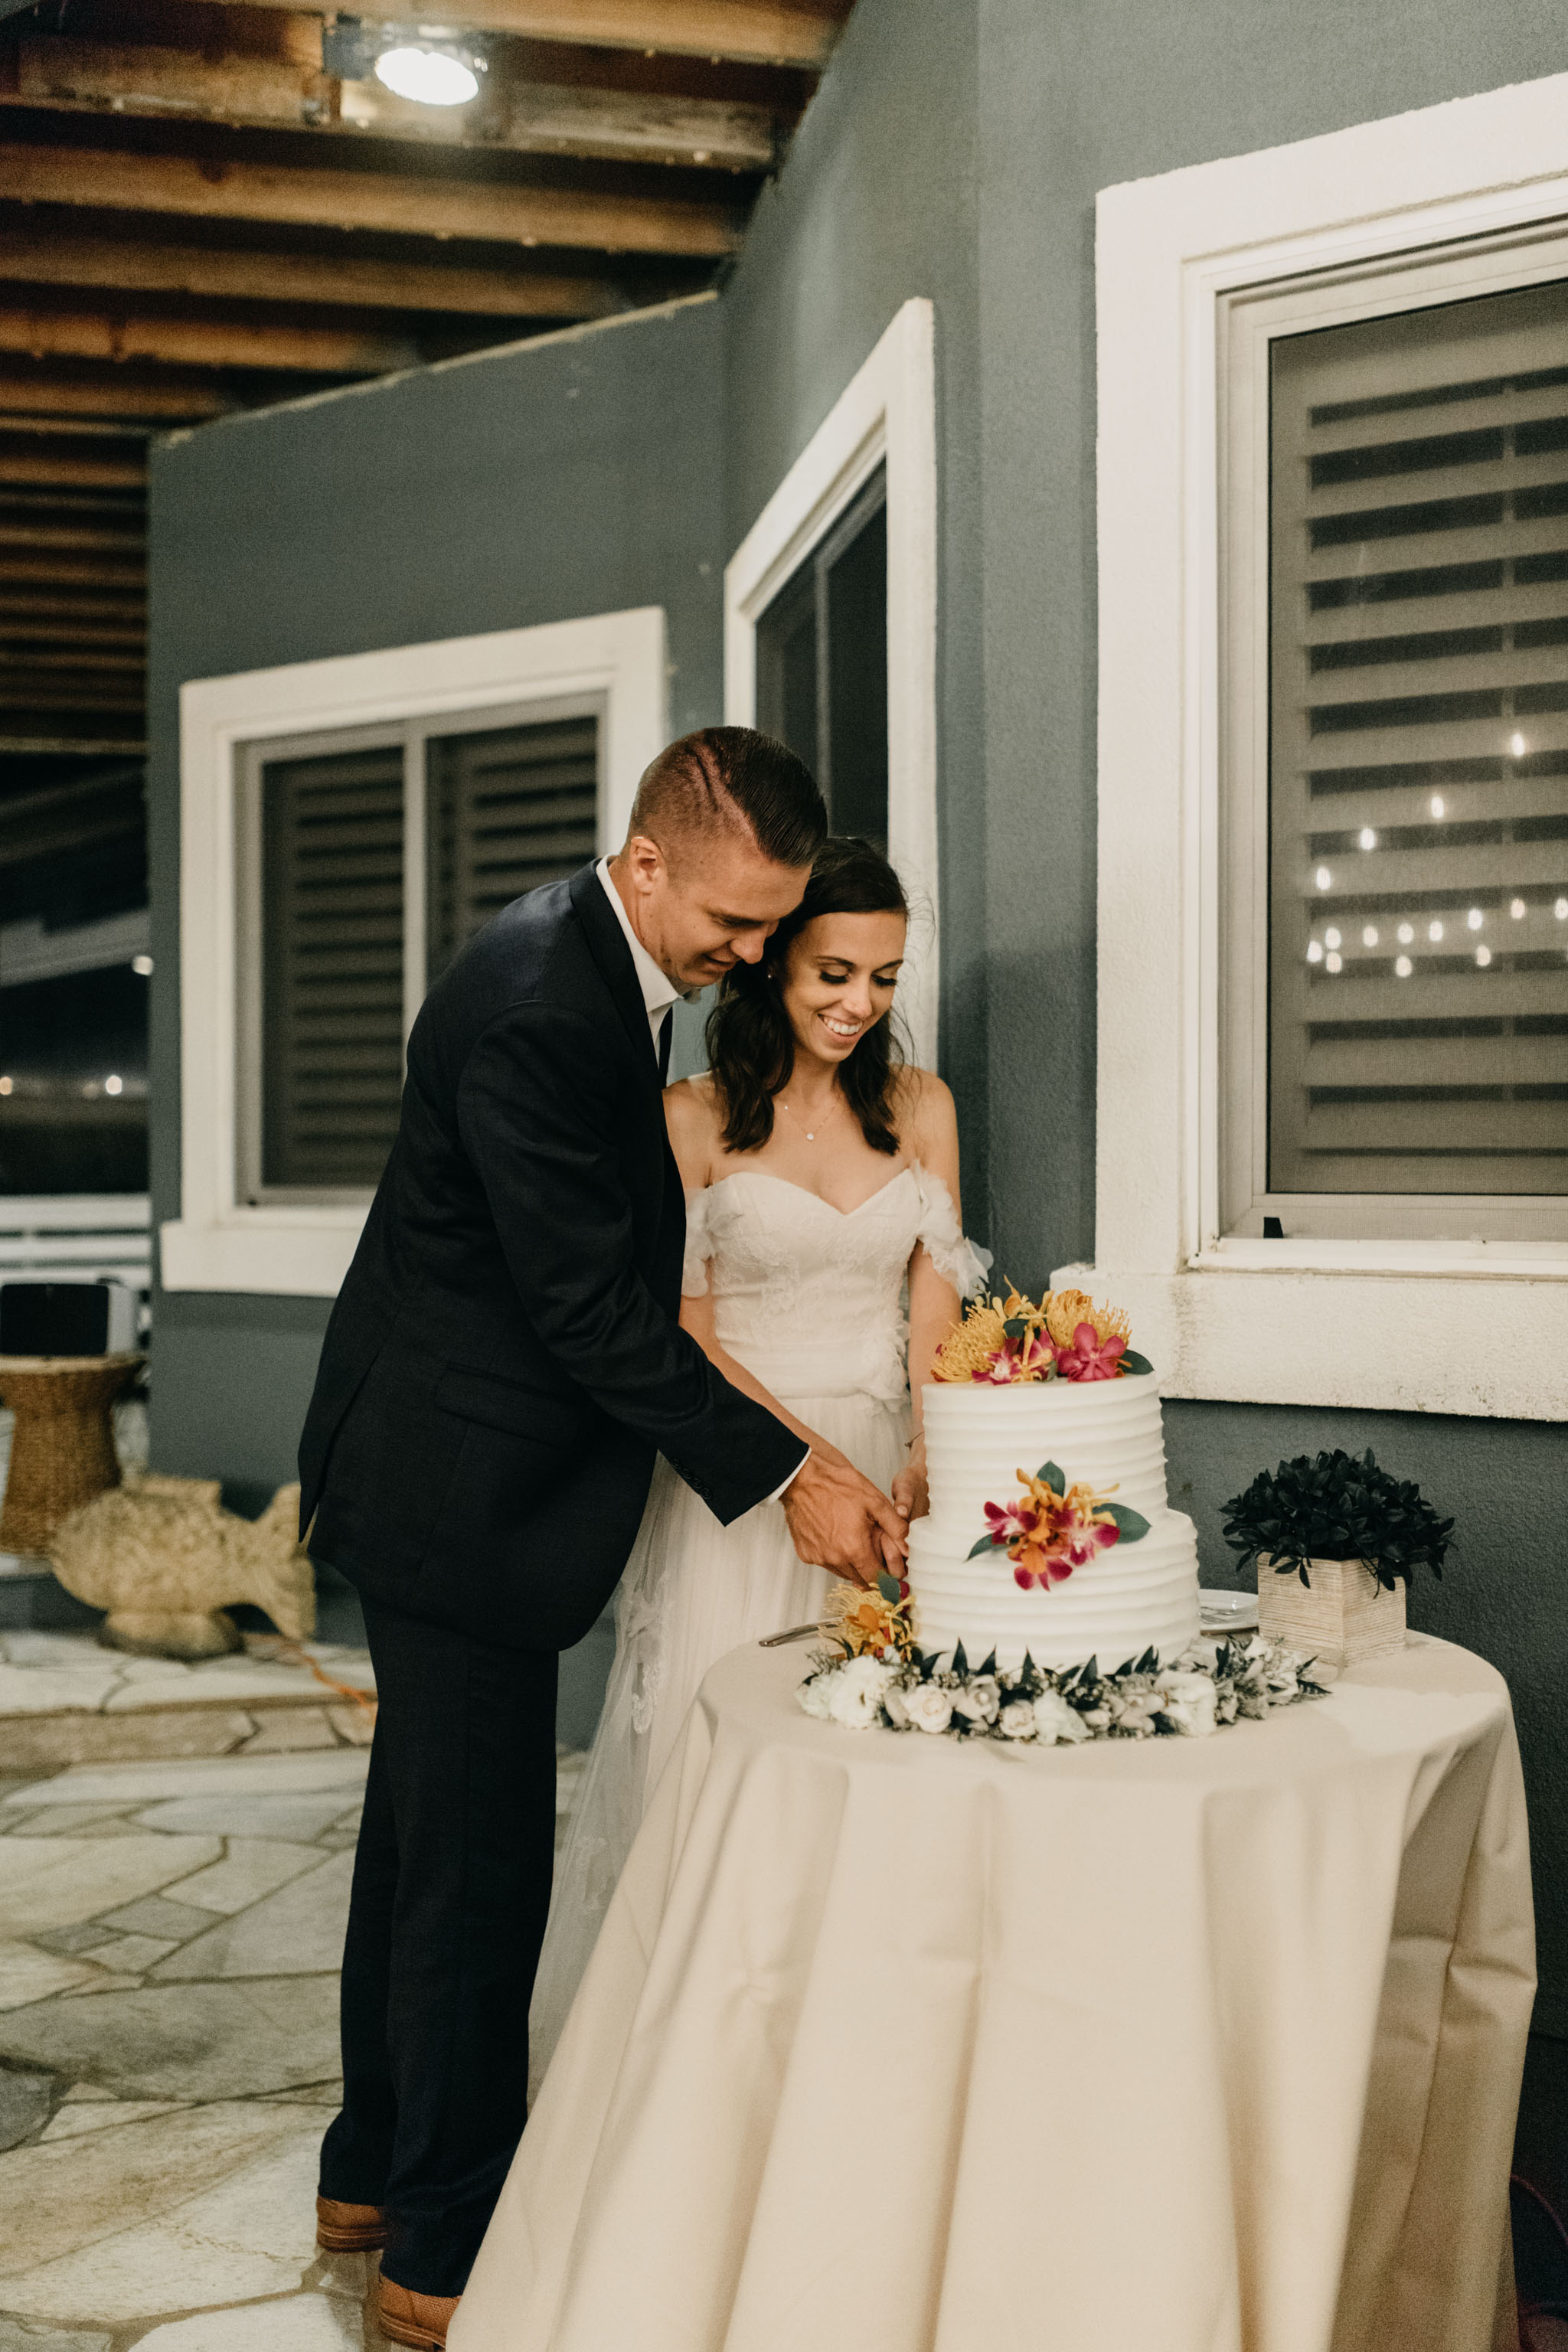 Cake cutting- Laie Point Backyard Wedding By Hawaii Wedding Photographer Desiree Leilani